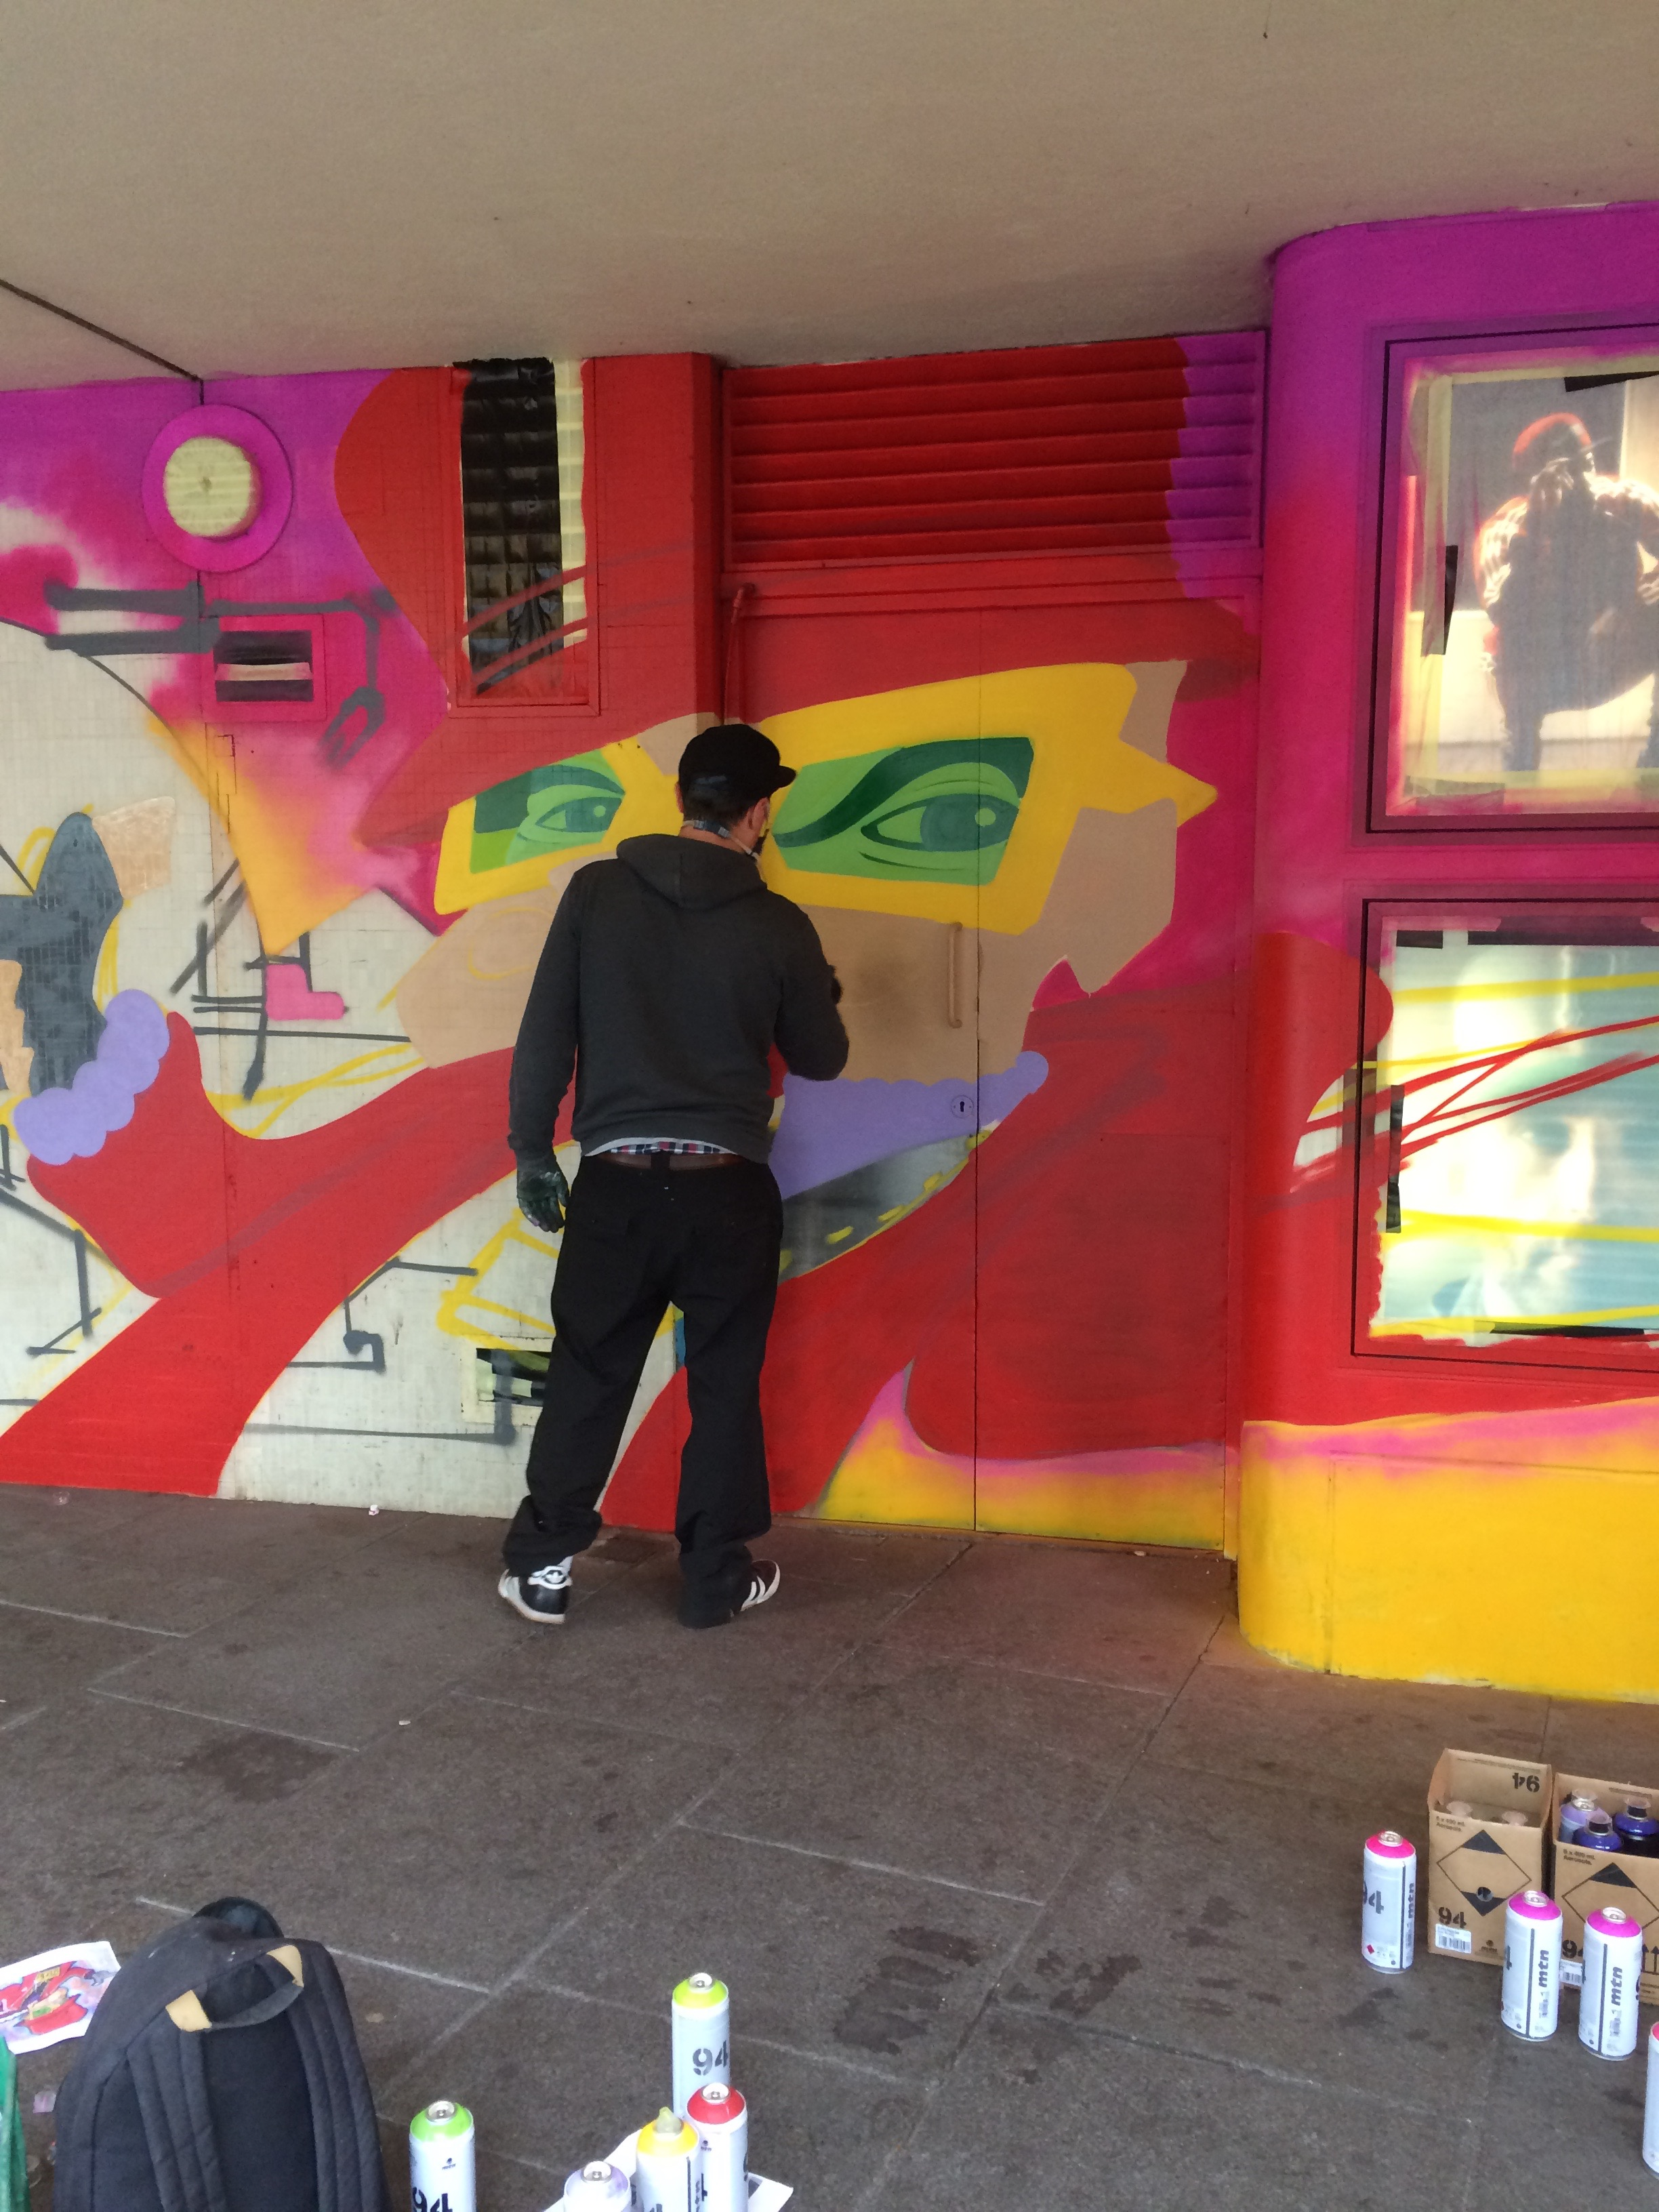 May 2nd was the Breakin' Jam. Street artists have been commissioned to paint the side of the Royal Concert Hall in celebration of the Breakin' Convention arriving in Nottingham.